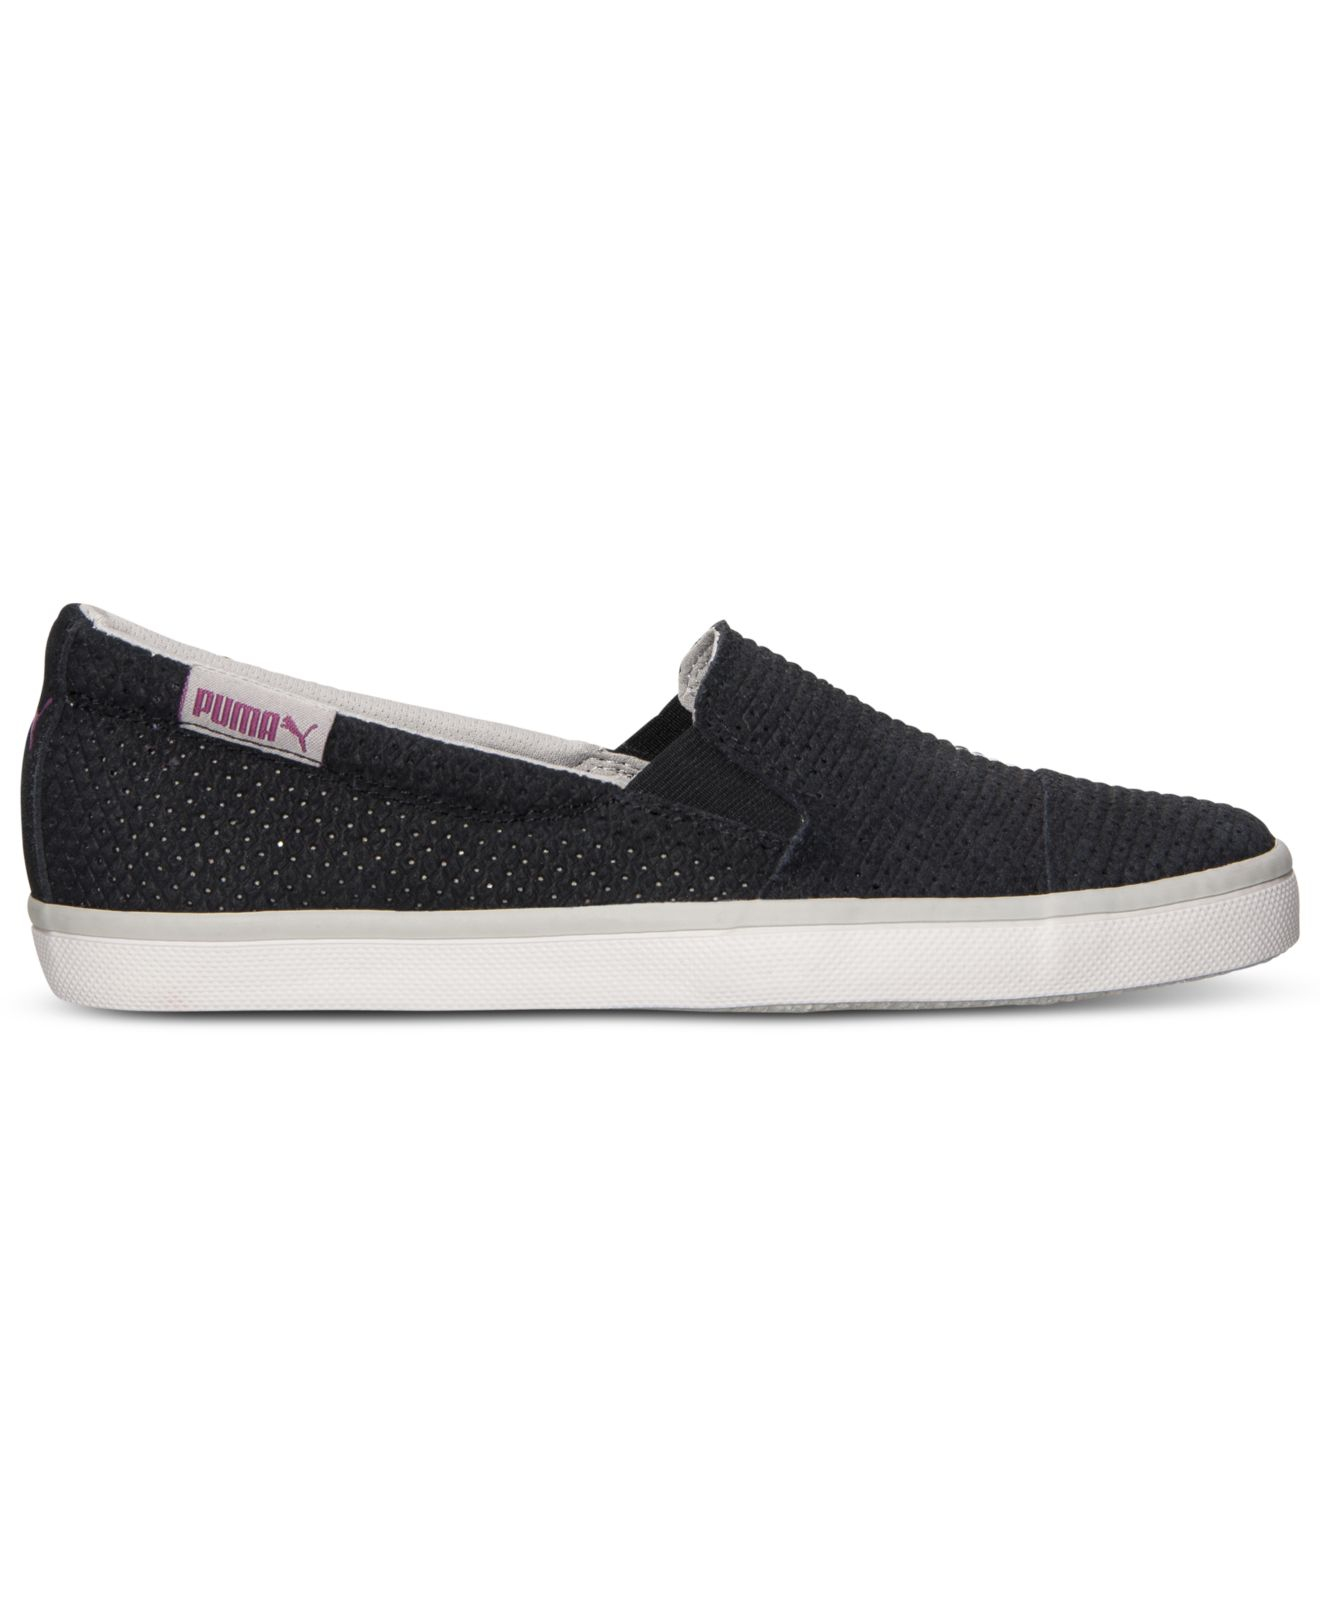 4e6ec819b27 Lyst - PUMA Women s Pc Extreme Vulc Slip-on Casual Sneakers From ...